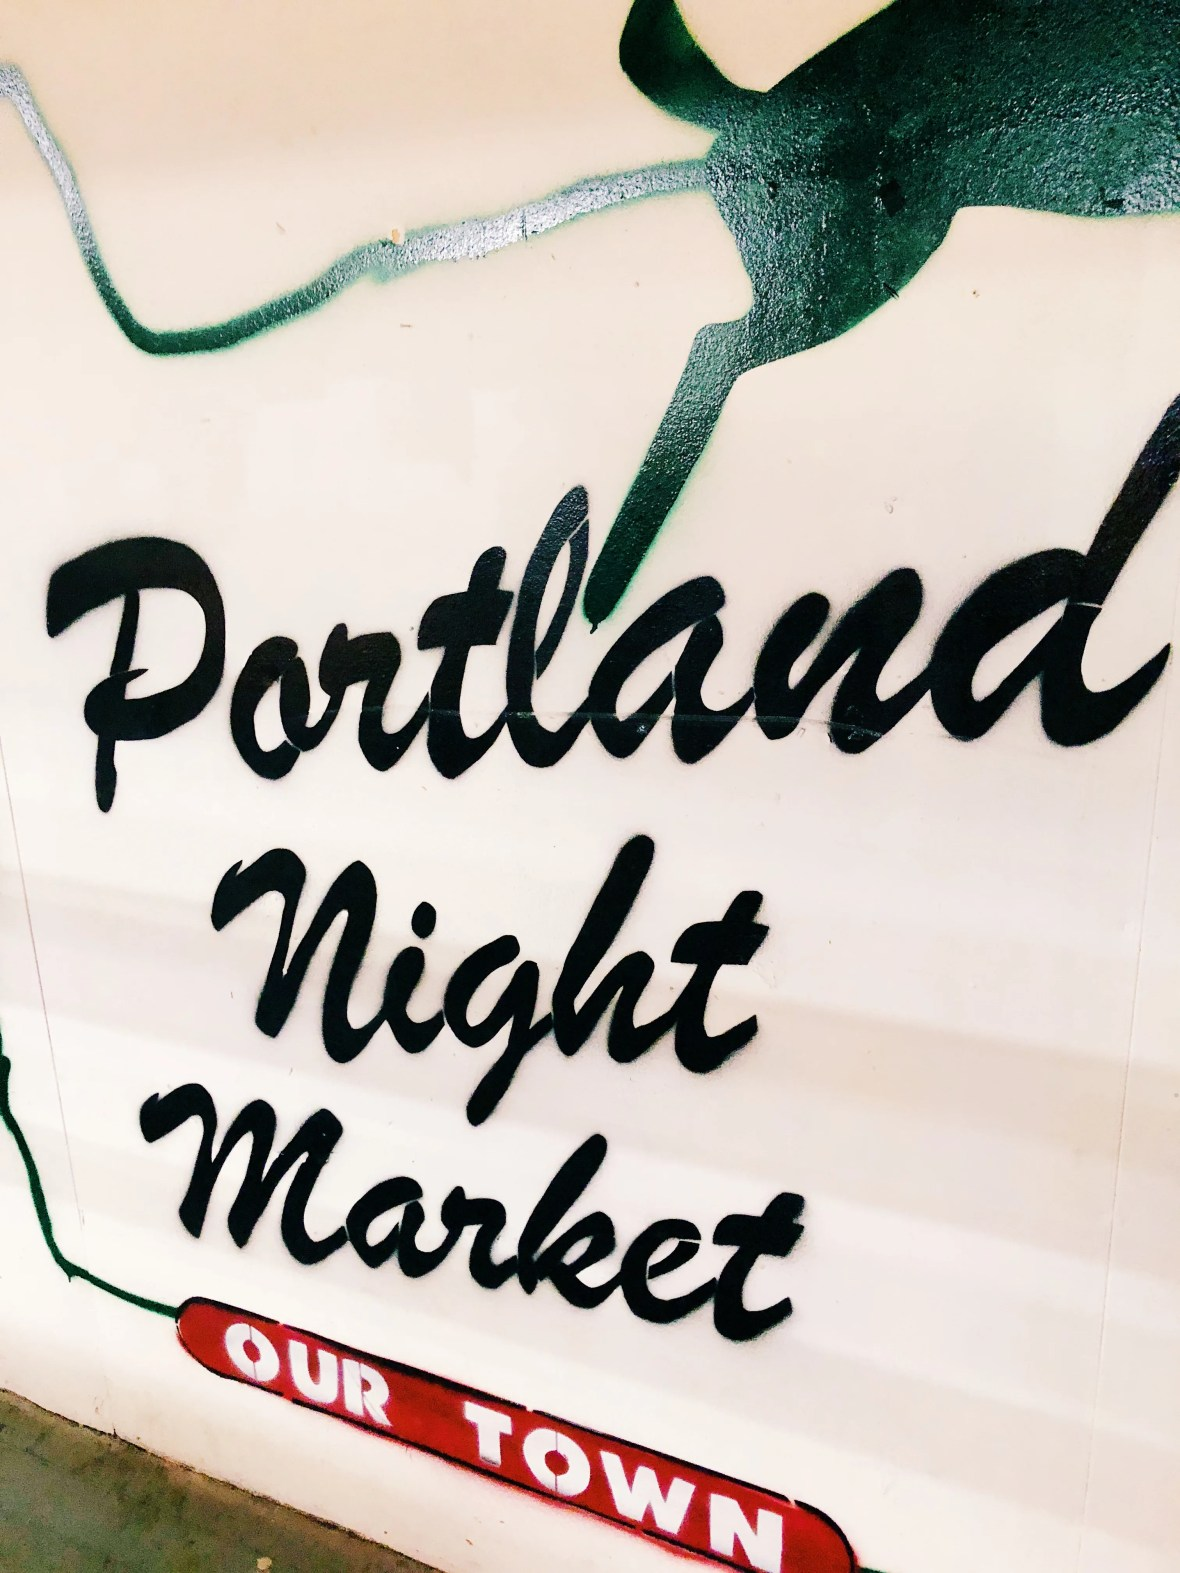 Portland Night Market // stephanieorefice.net